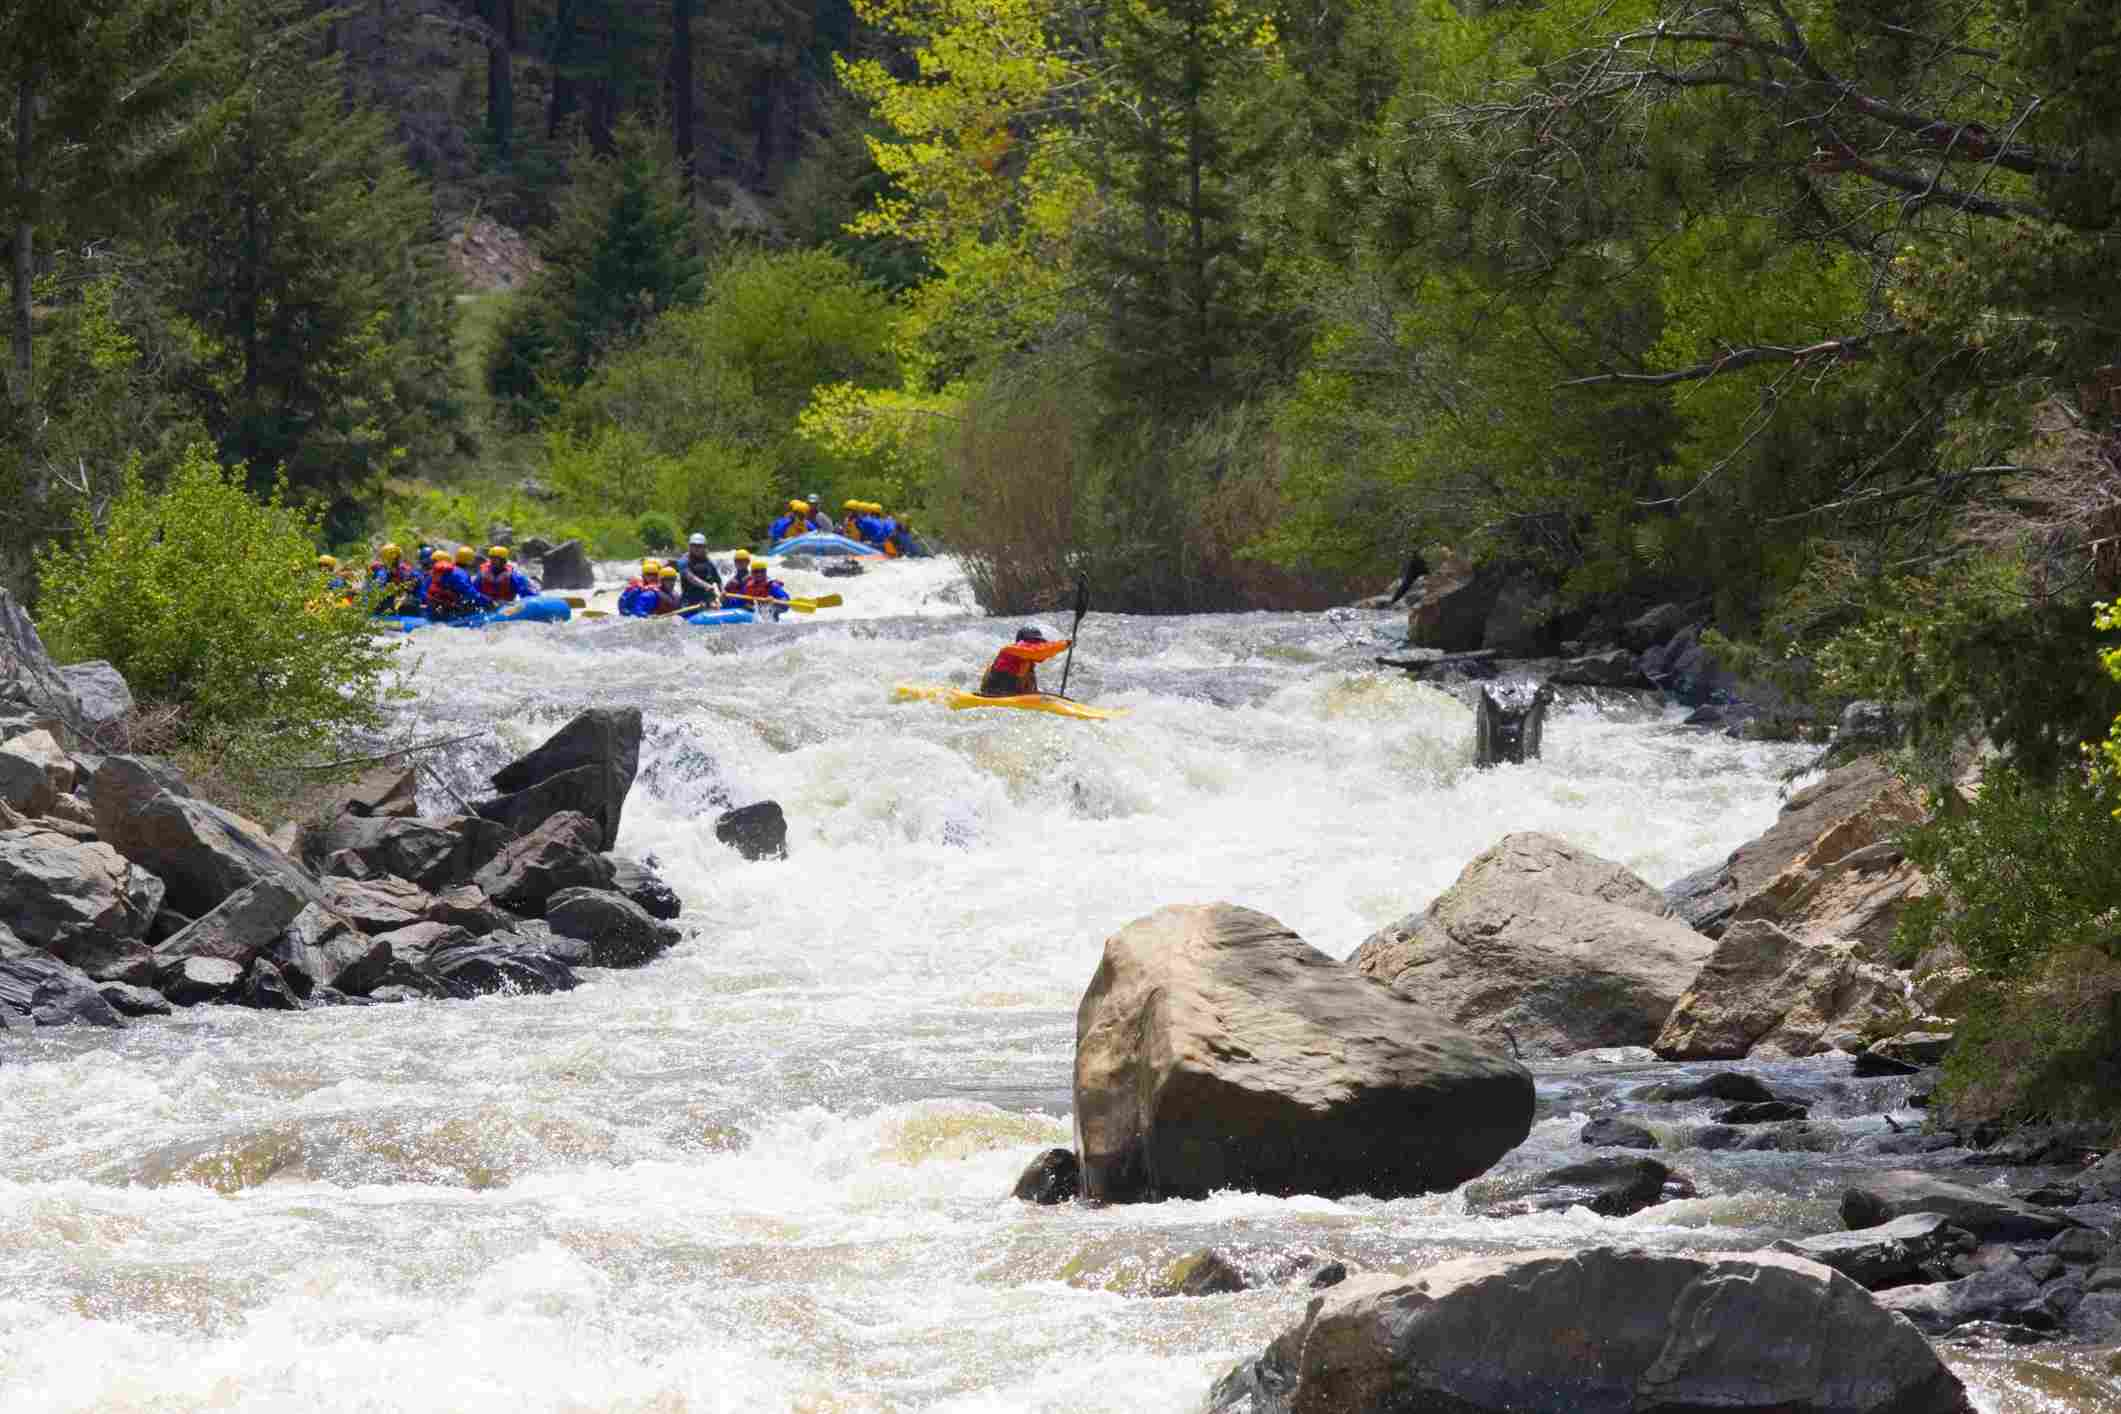 White water rafters and Clear Creek Rafting Company negotiate the whitewater of Clear Creek Colorado near Idaho Springs.